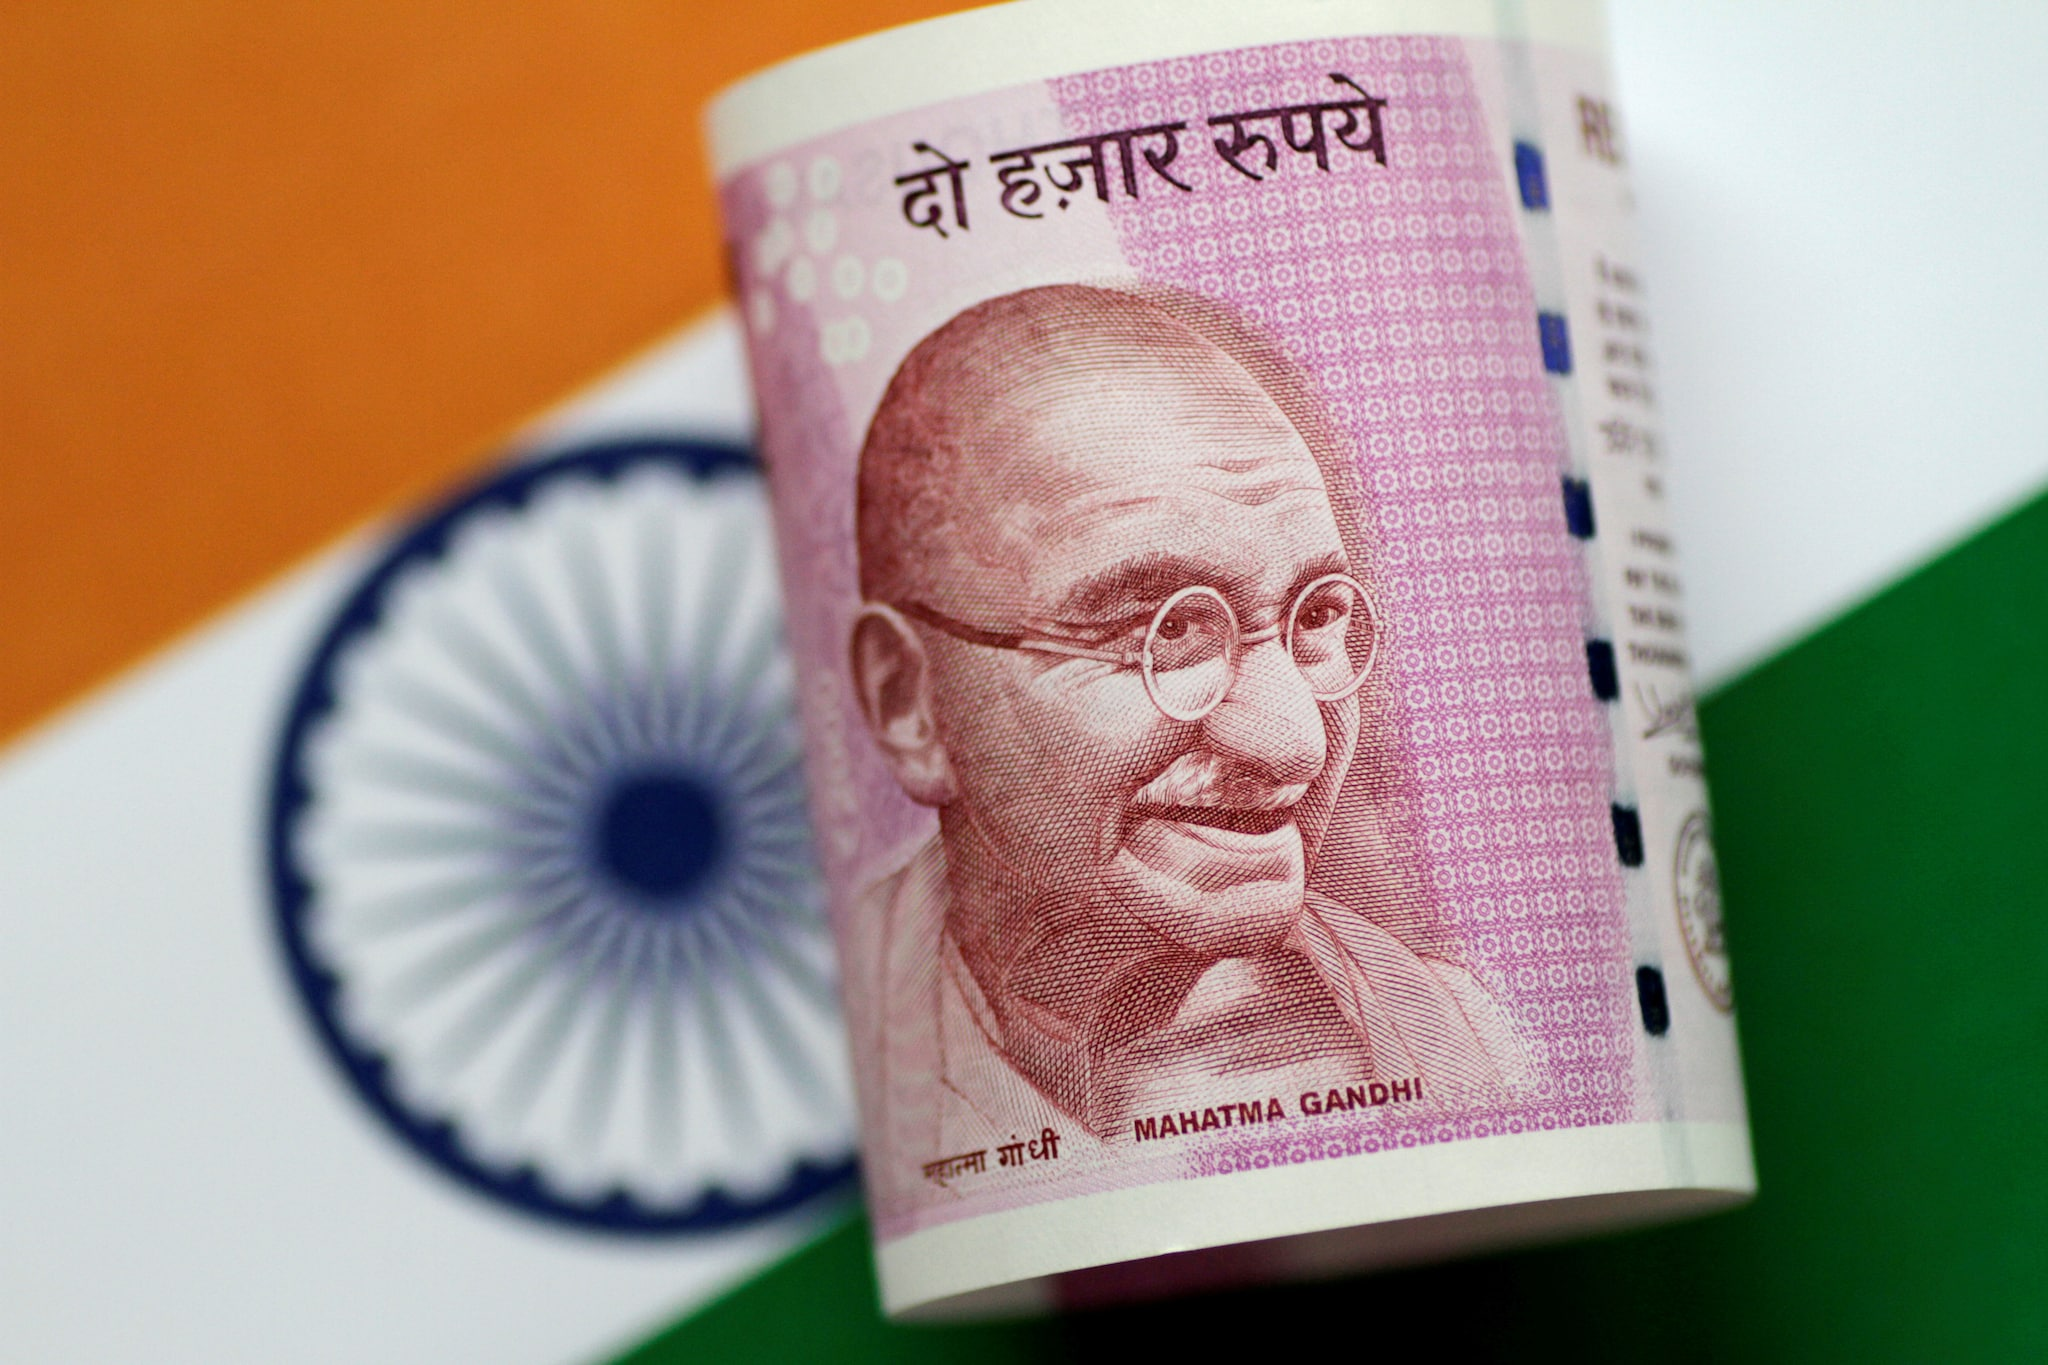 10. Investment In P-Notes Increase: Investments in the domestic capital market through participatory notes, led by equity allocation, rose to Rs 81,220 crore at the end of April on hopes of favourable market conditions. Participatory notes (P-notes) are issued by registered foreign portfolio investors (FPIs) to overseas investors who wish to be a part of the Indian stock market without registering themselves directly after going through a due diligence process. The total value of P-note investment in domestic capital markets -- equity, debt and derivatives -- stood at Rs 81,220 crore till April-end, latest Sebi data showed. Out of the total investments made till April-end, Rs 58,820 crore was invested in the equities segment, Rs 21,542 crore in debt and Rs 123 crore in the derivatives market. (Image: Reuters)